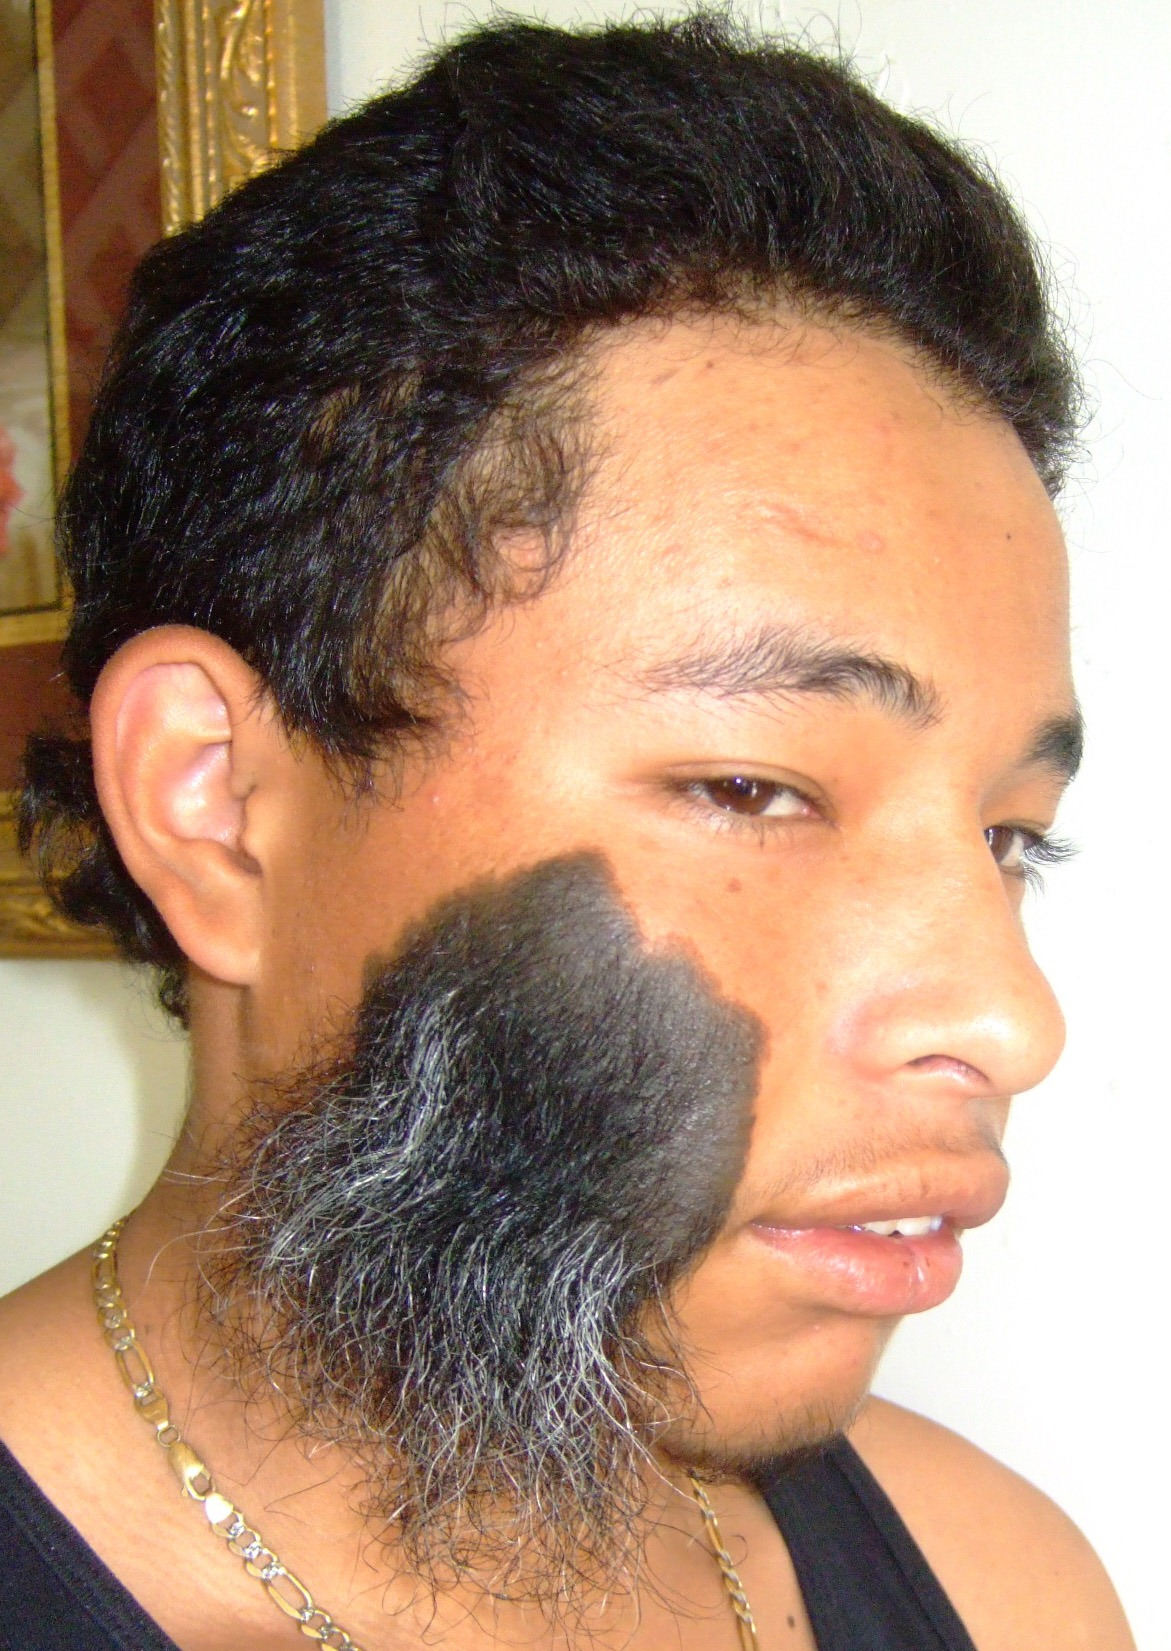 Hairy Face Disorder